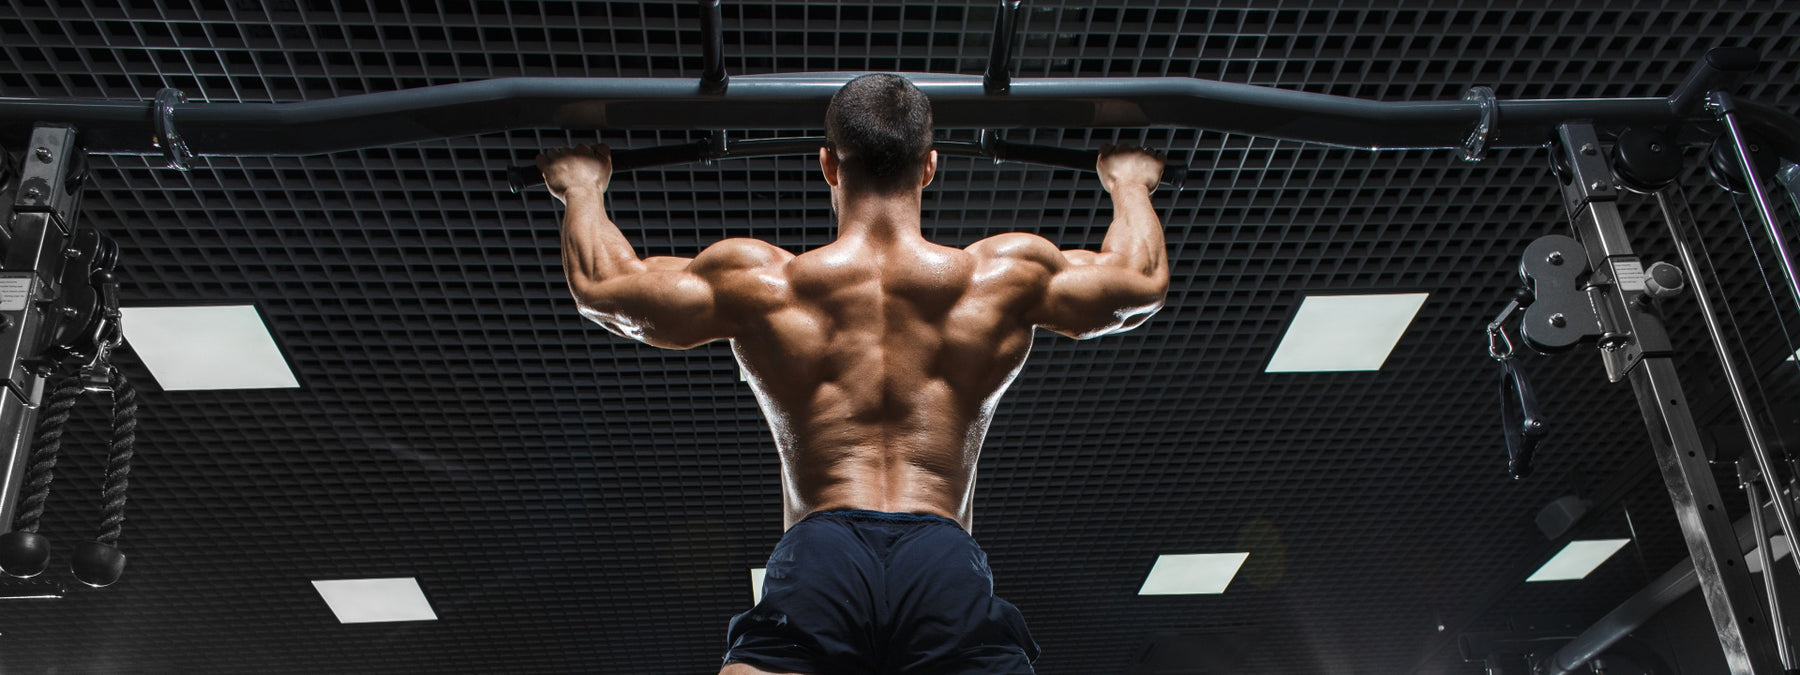 11 Feats of Strength That Every Lifter Should Accomplish